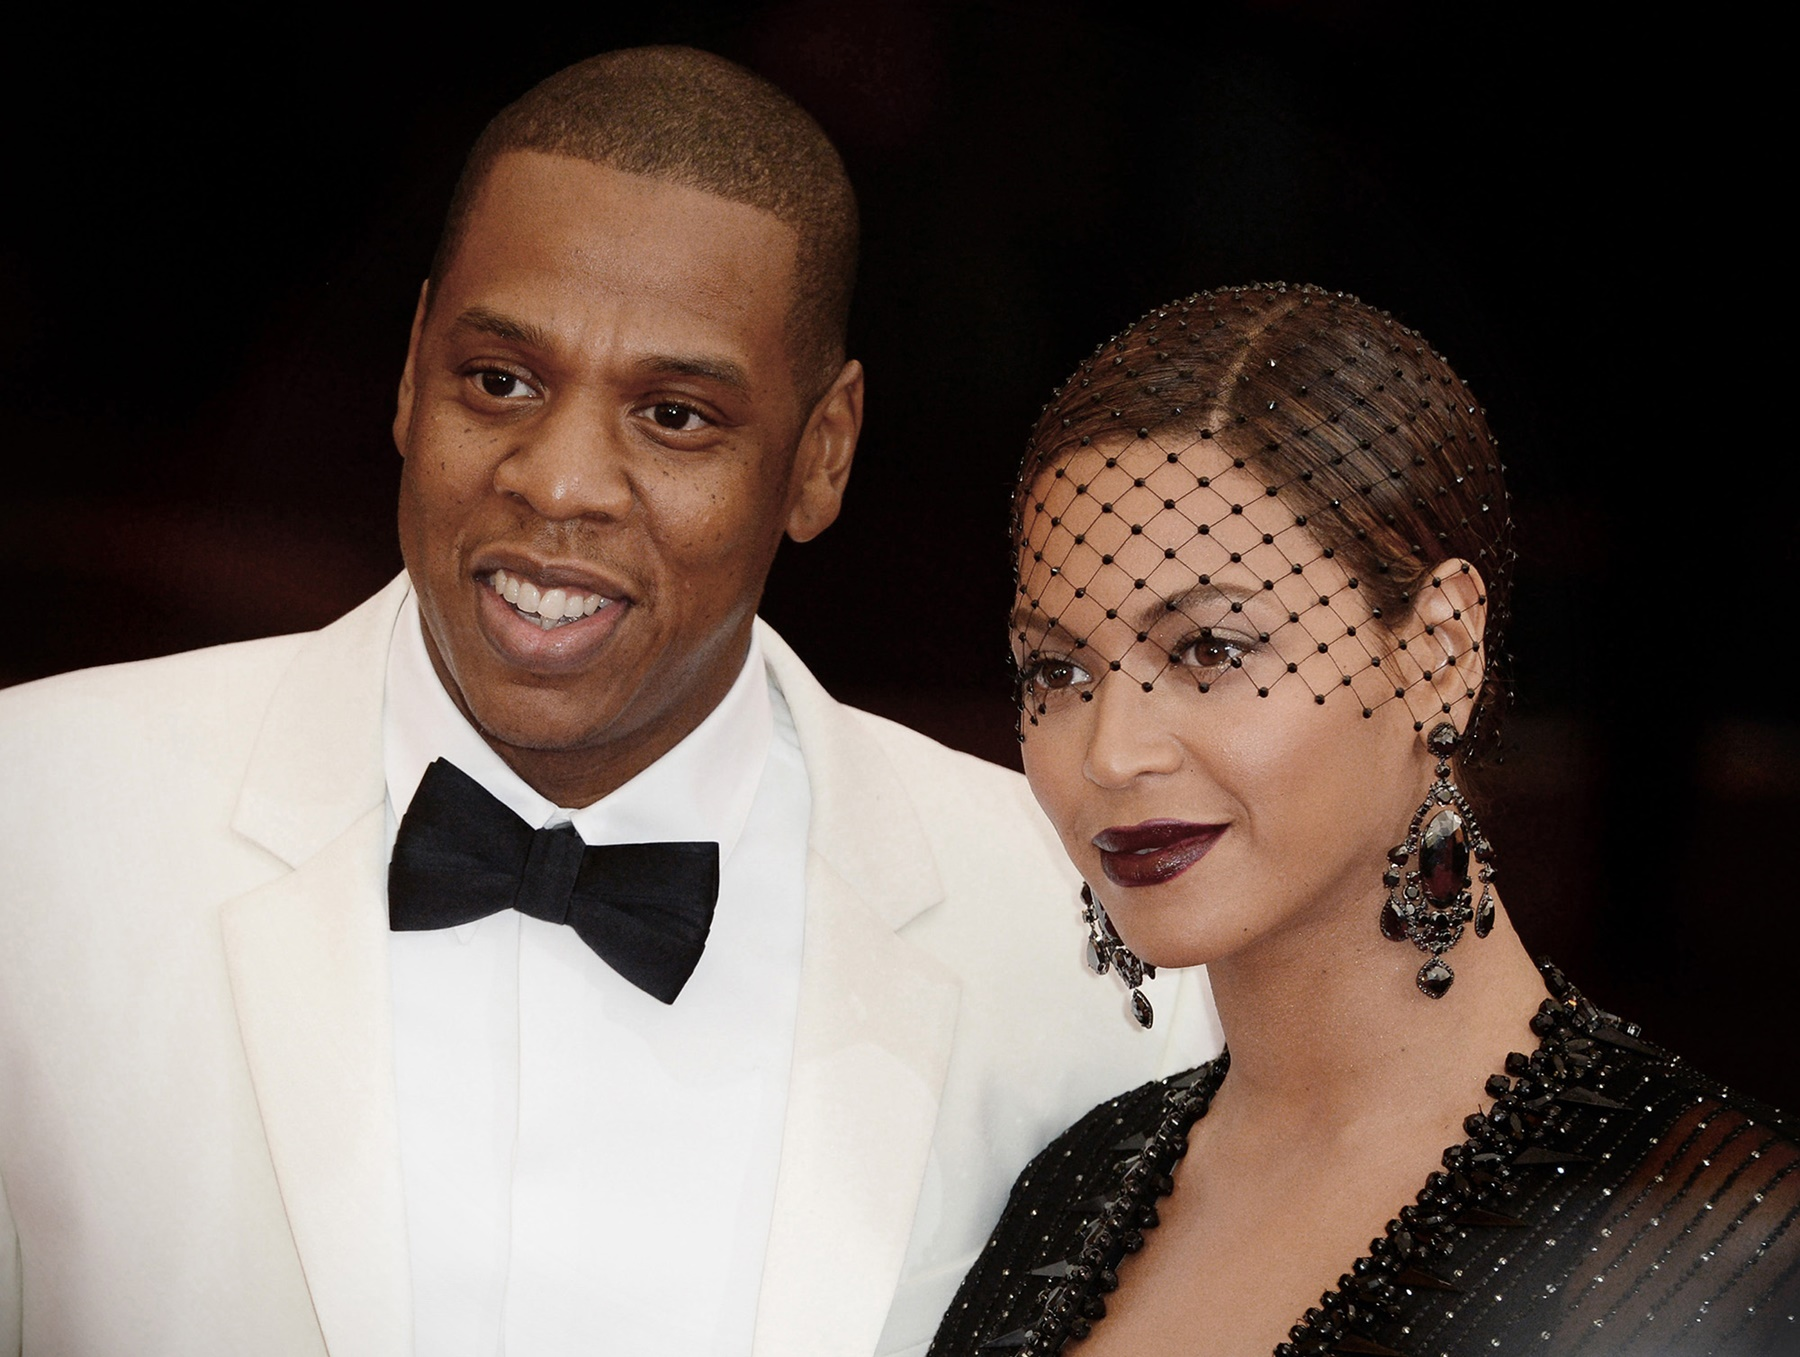 jay-z-explains-why-nipsey-hussle-was-the-new-black-man-beyonces-husband-touched-many-with-his-deep-words